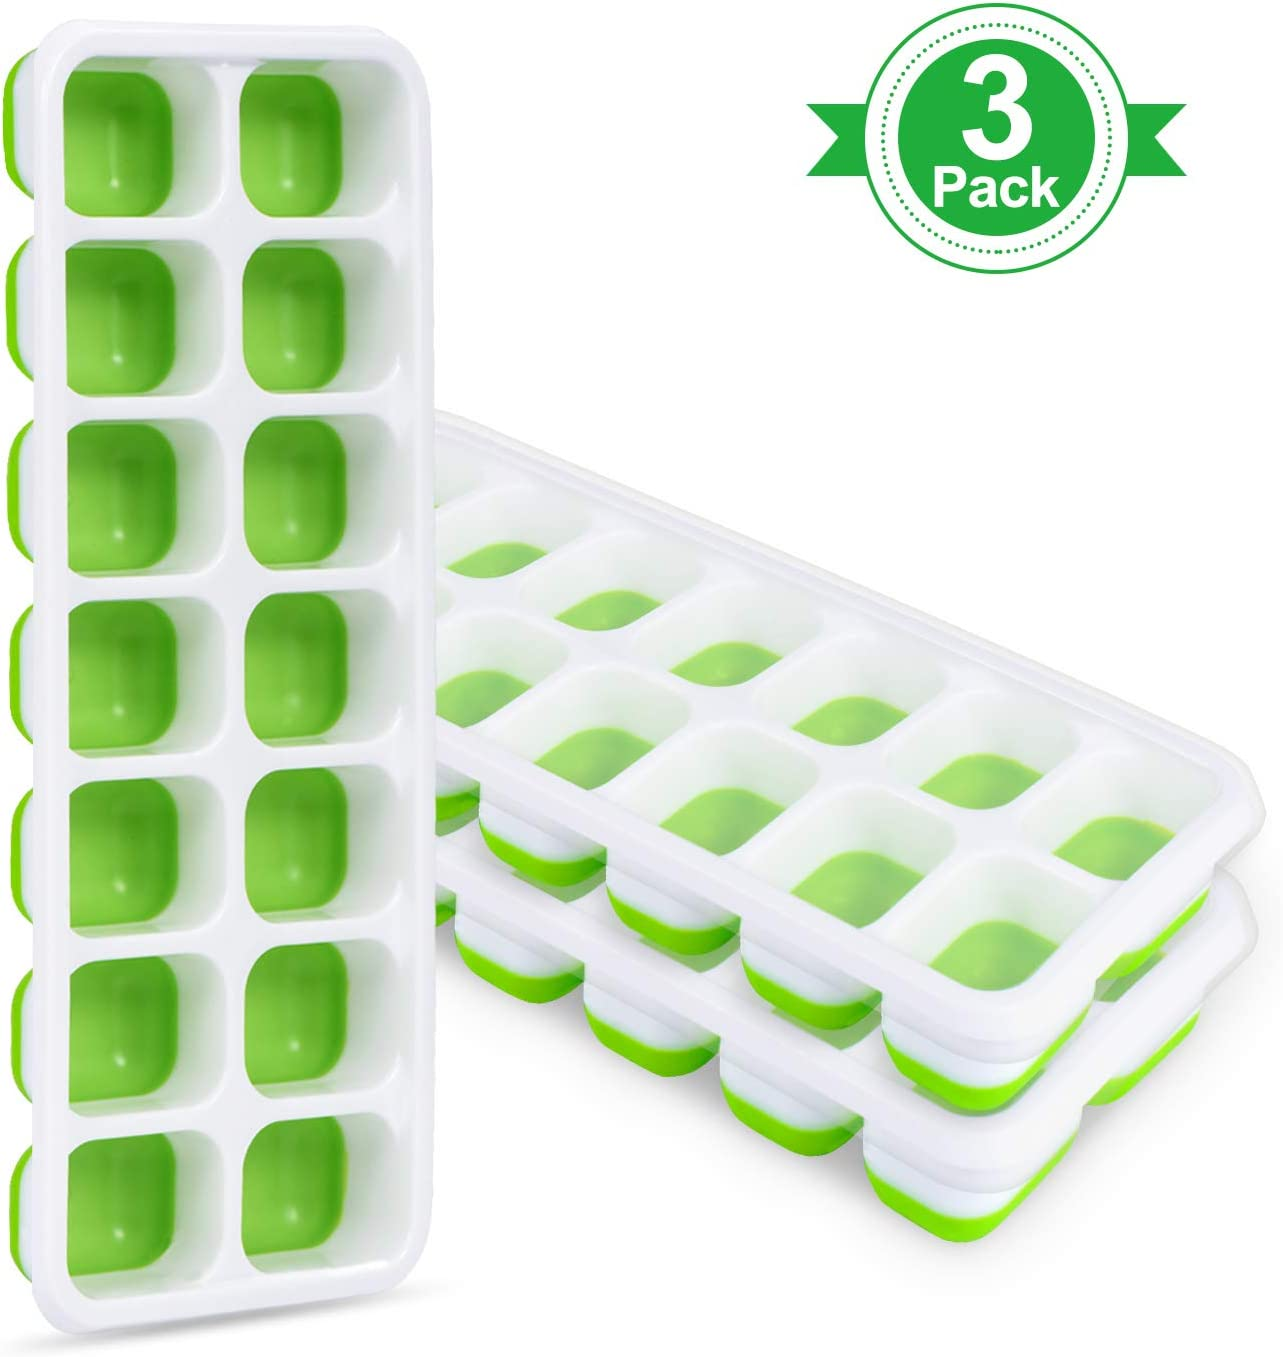 Adoric Ice Cube Trays 3 Pack, Easy-Release Silicone and Flexible 14-Ice Trays with Removable Lid, LFGB Certified and BPA Free, Stackable and Dishwasher Safe (White + Green)